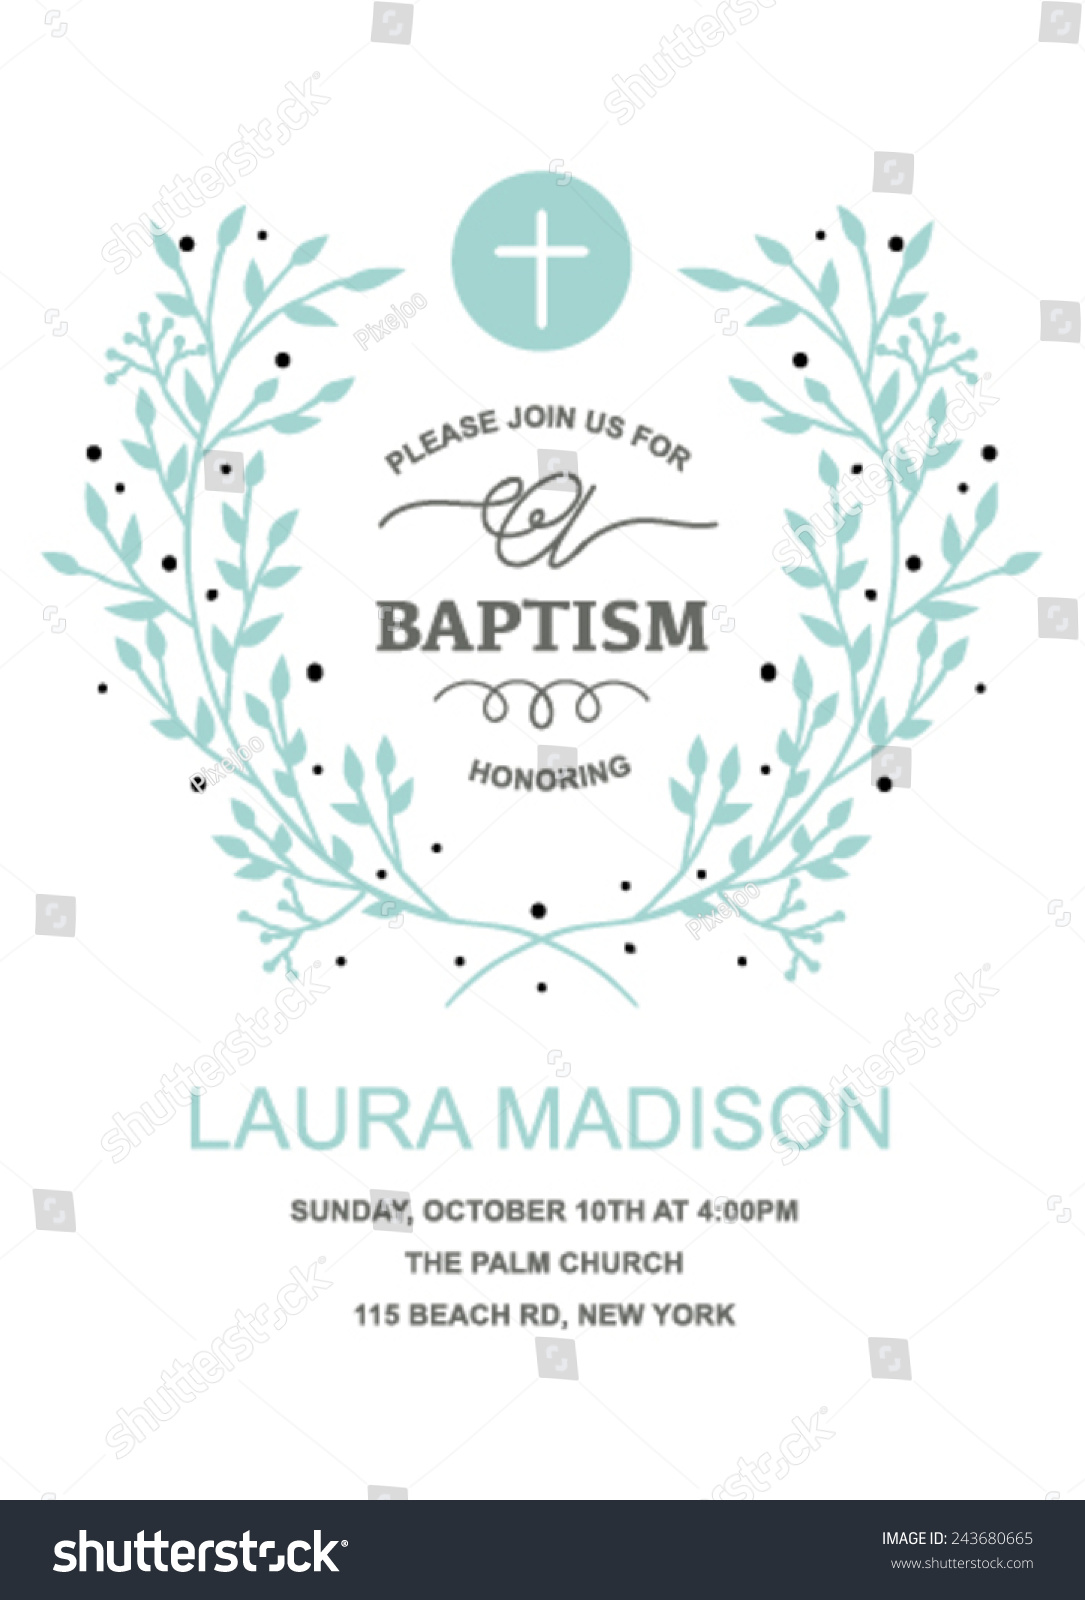 Baptism Invitations For Boy is luxury invitation layout